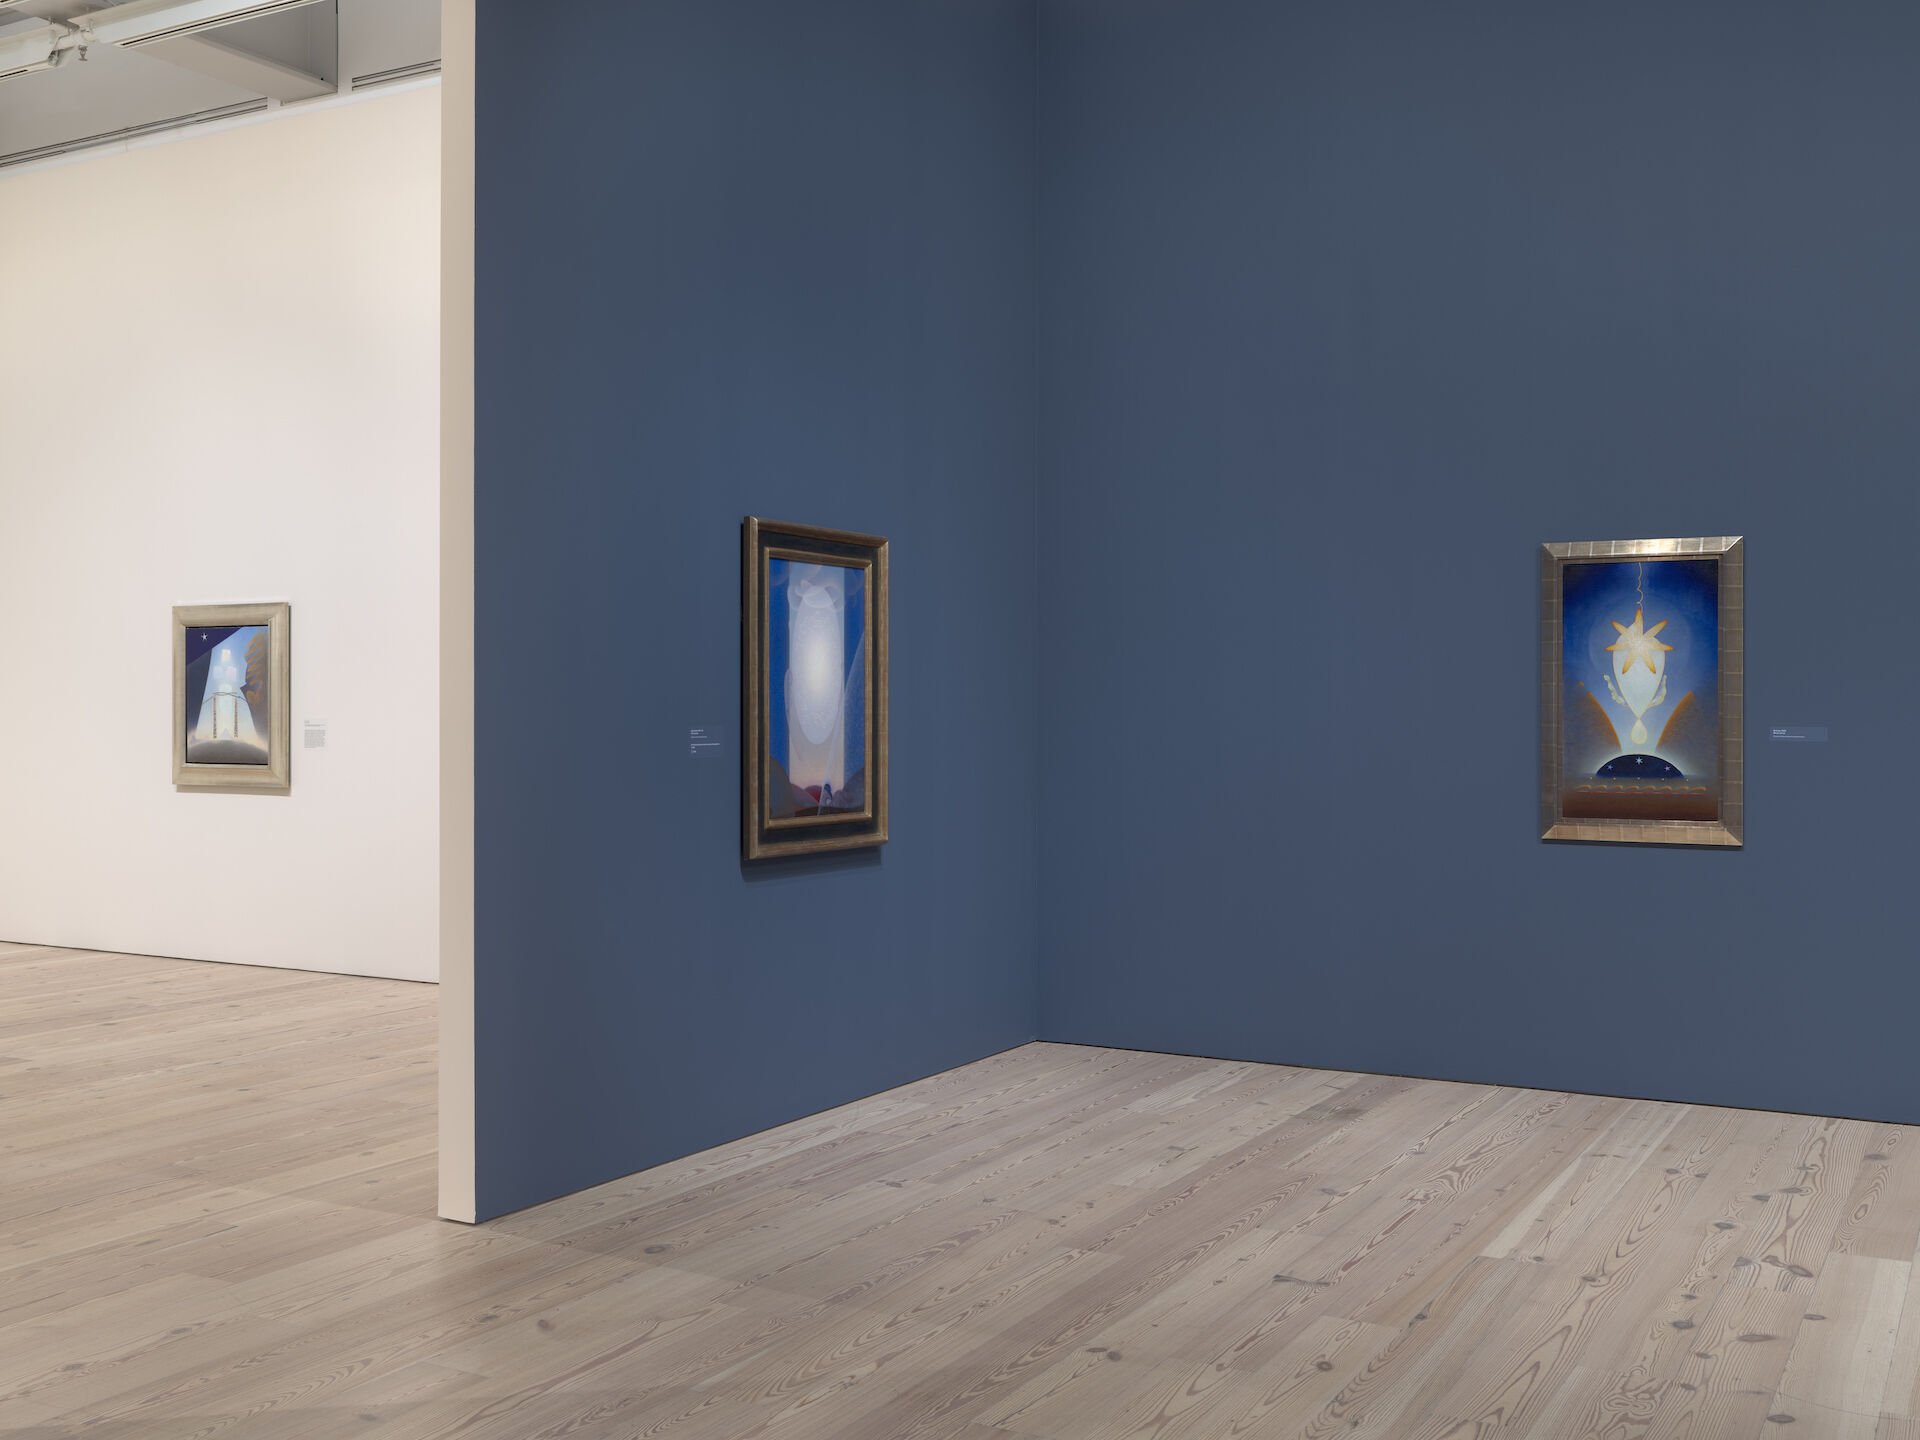 Looking from a blue room toward a white room to the left in the exhibition, Agnes Pelton: Desert Transcendentalist at the Whitney Museum of American Art. The work from left to right is Future, 1941; Light Center, 1947-48; and Birthday, 1943.